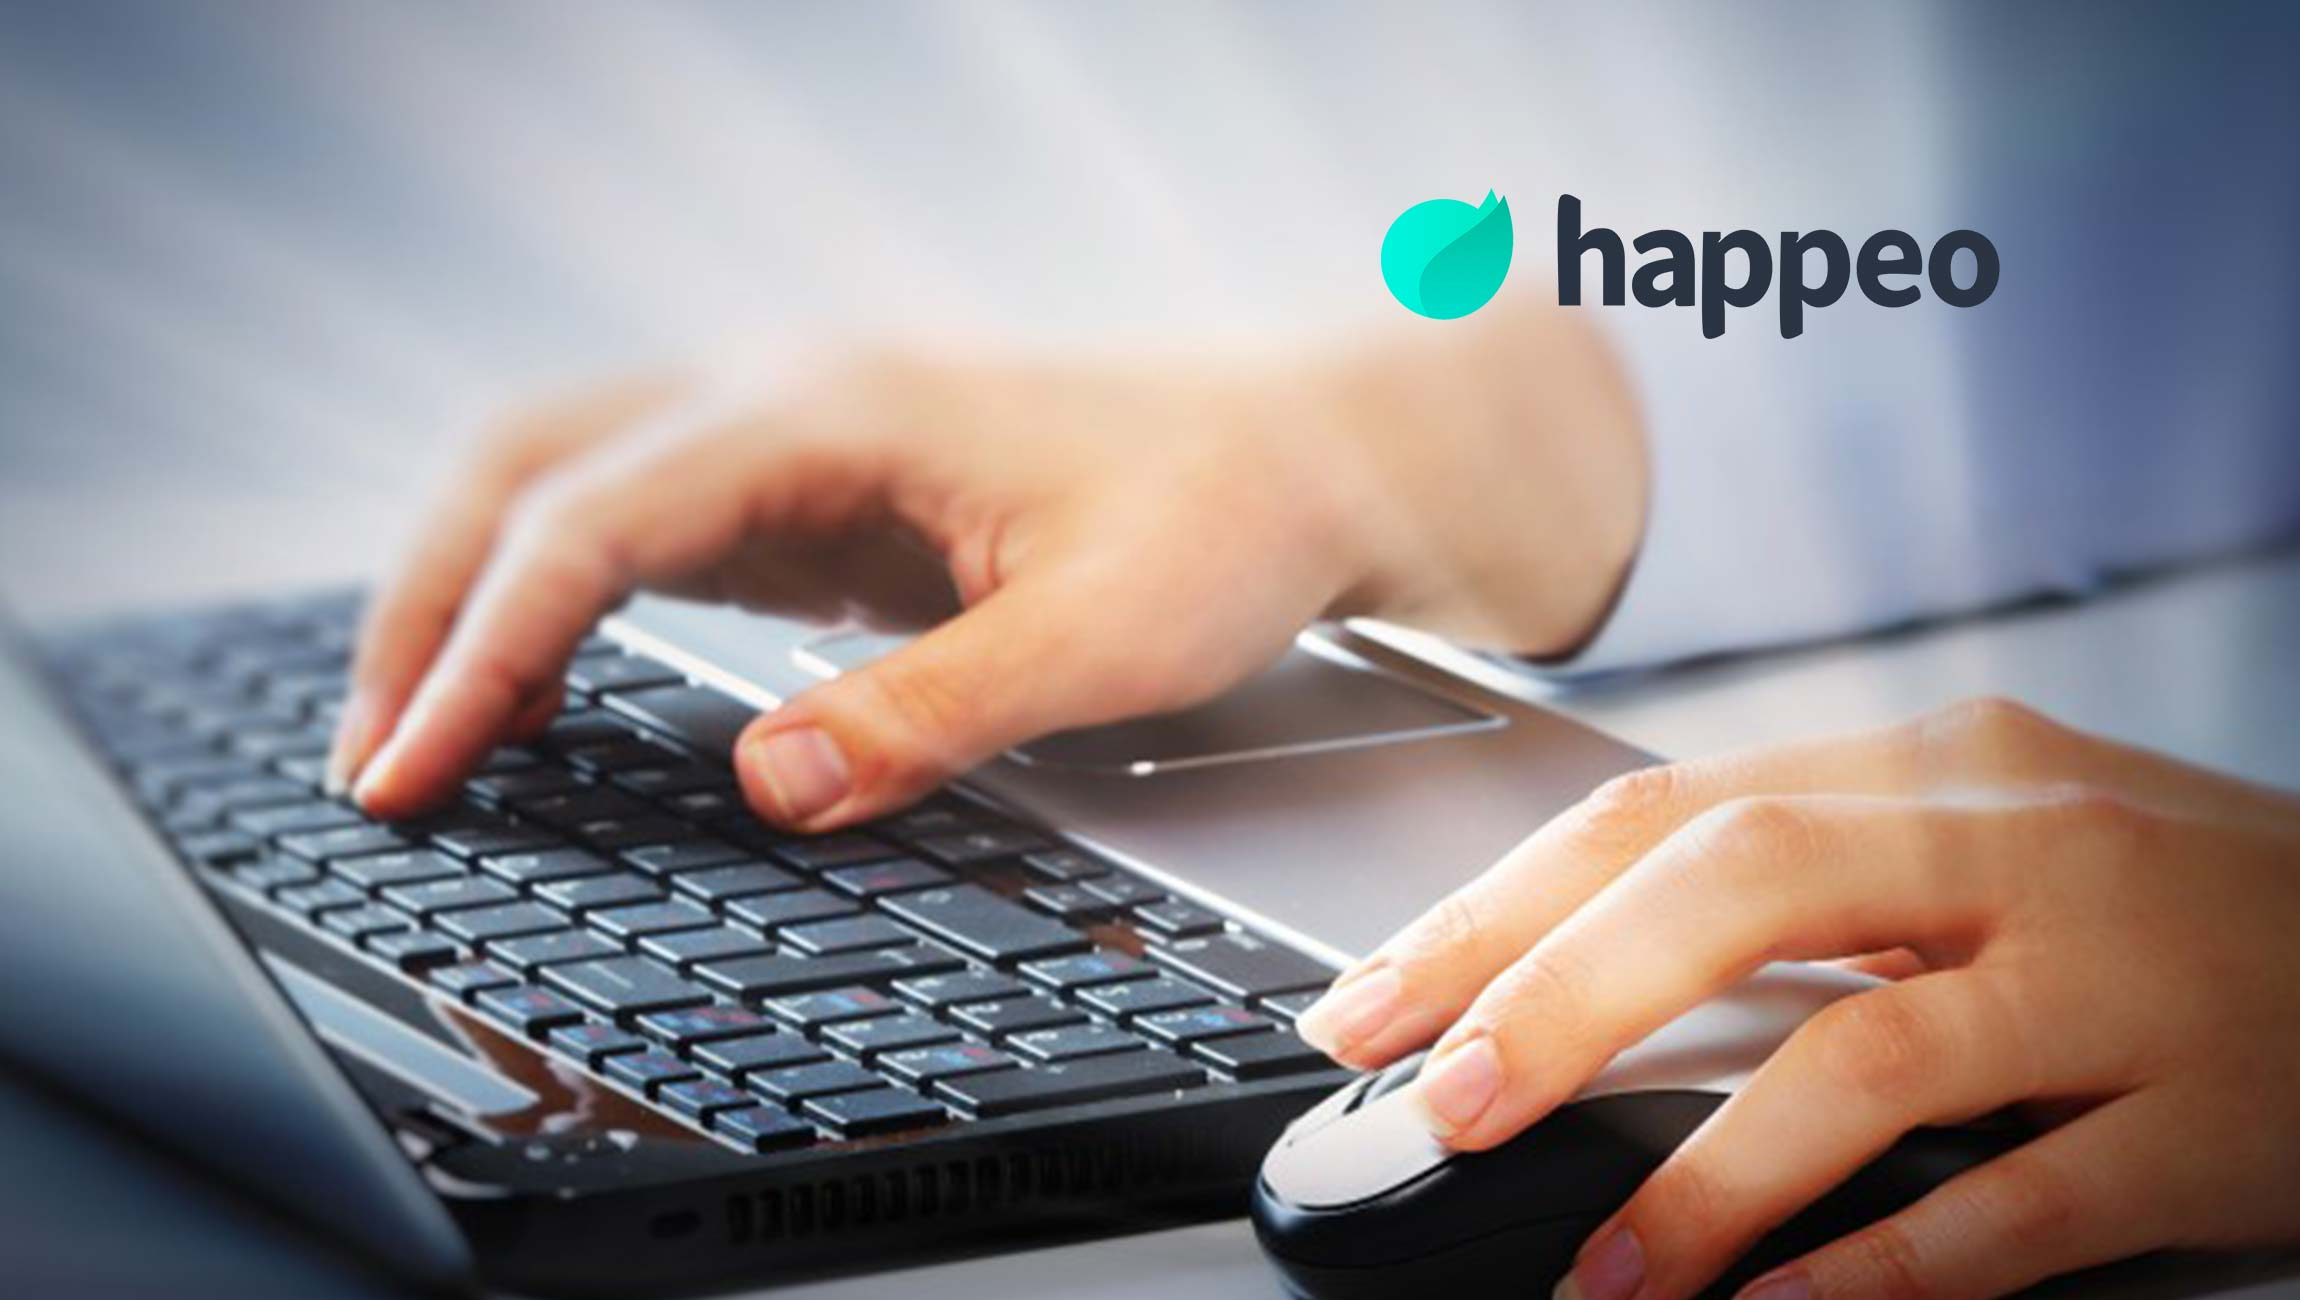 Happeo Raises $12 Million in Series A Funding to Further Disrupt the Intranet Industry